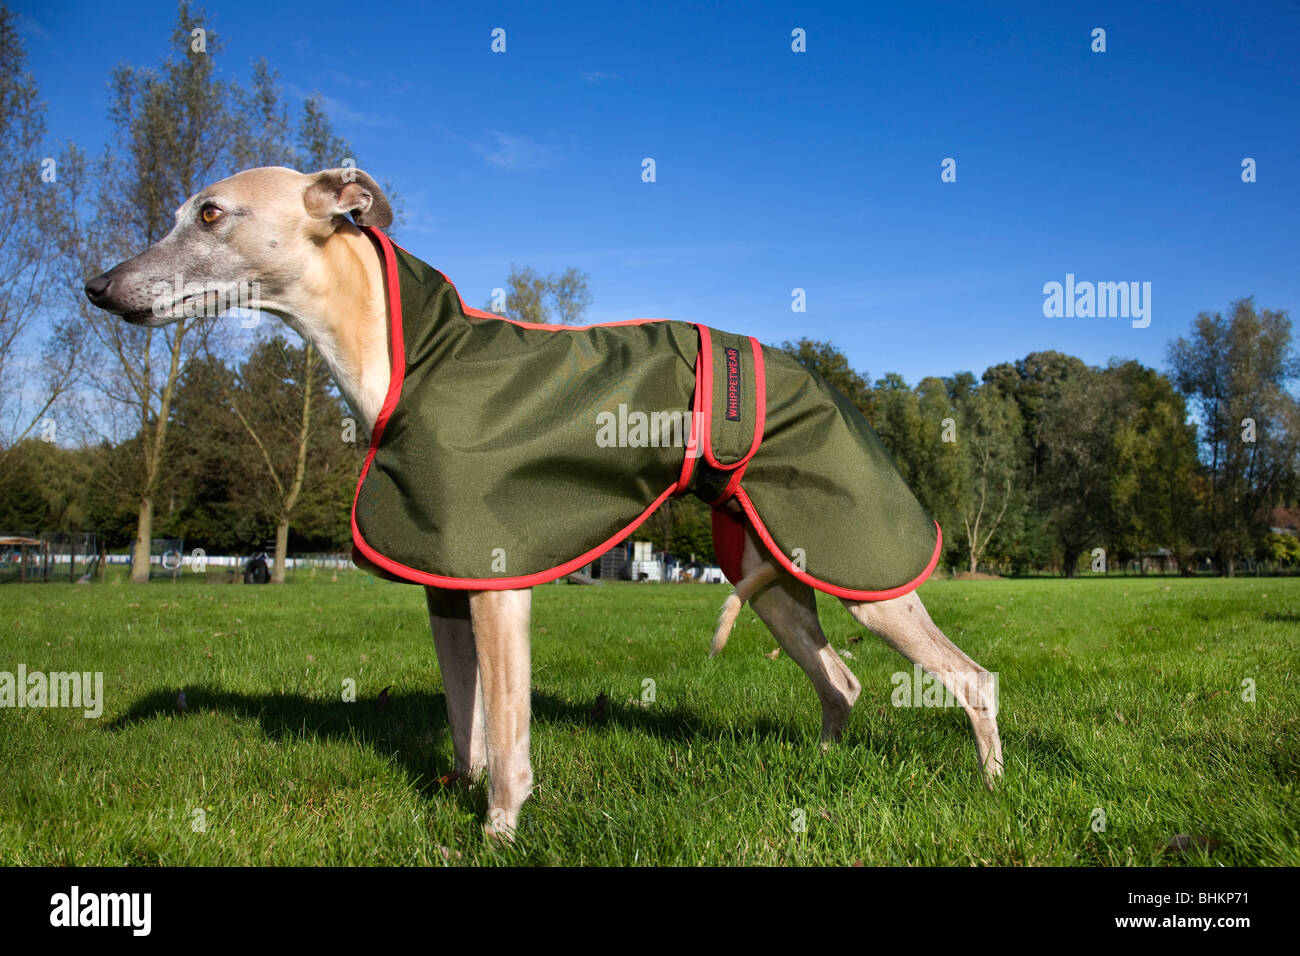 Whippet (Canis lupus familiaris) with jacket in garden - Stock Image